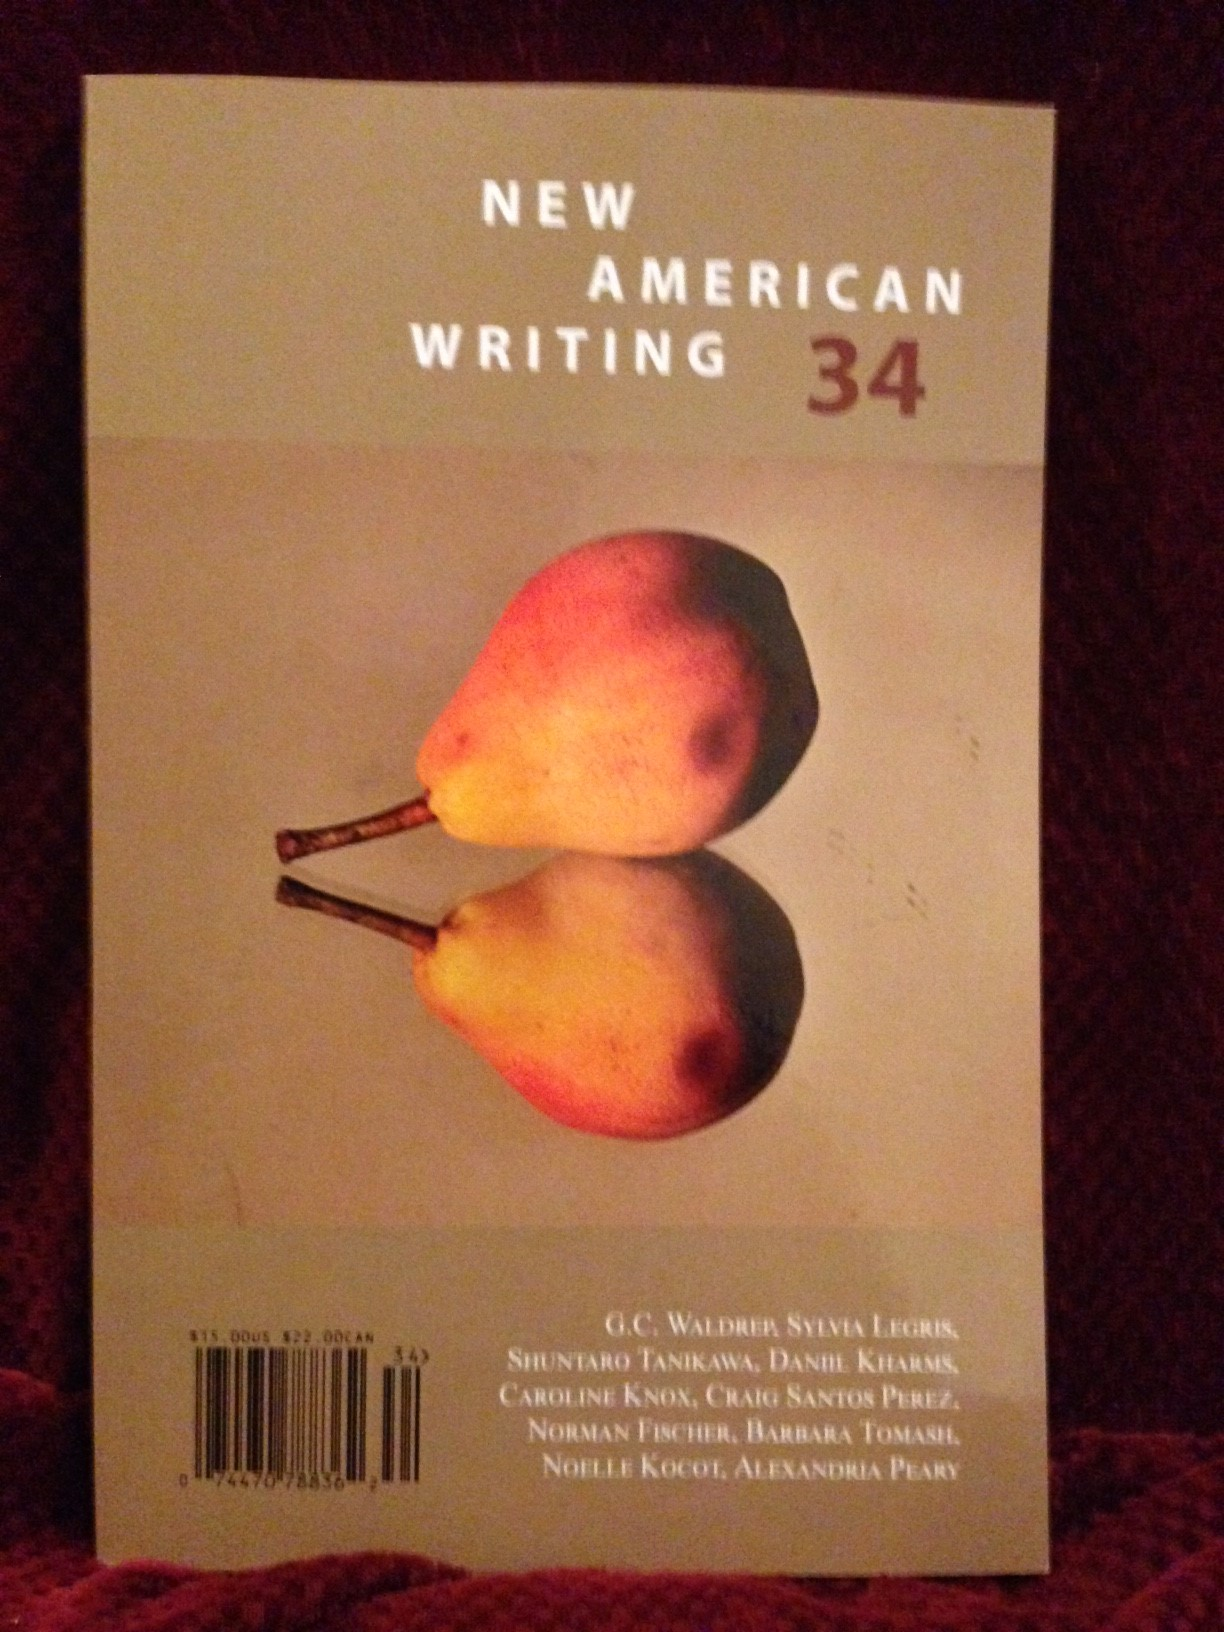 New American Writing 34